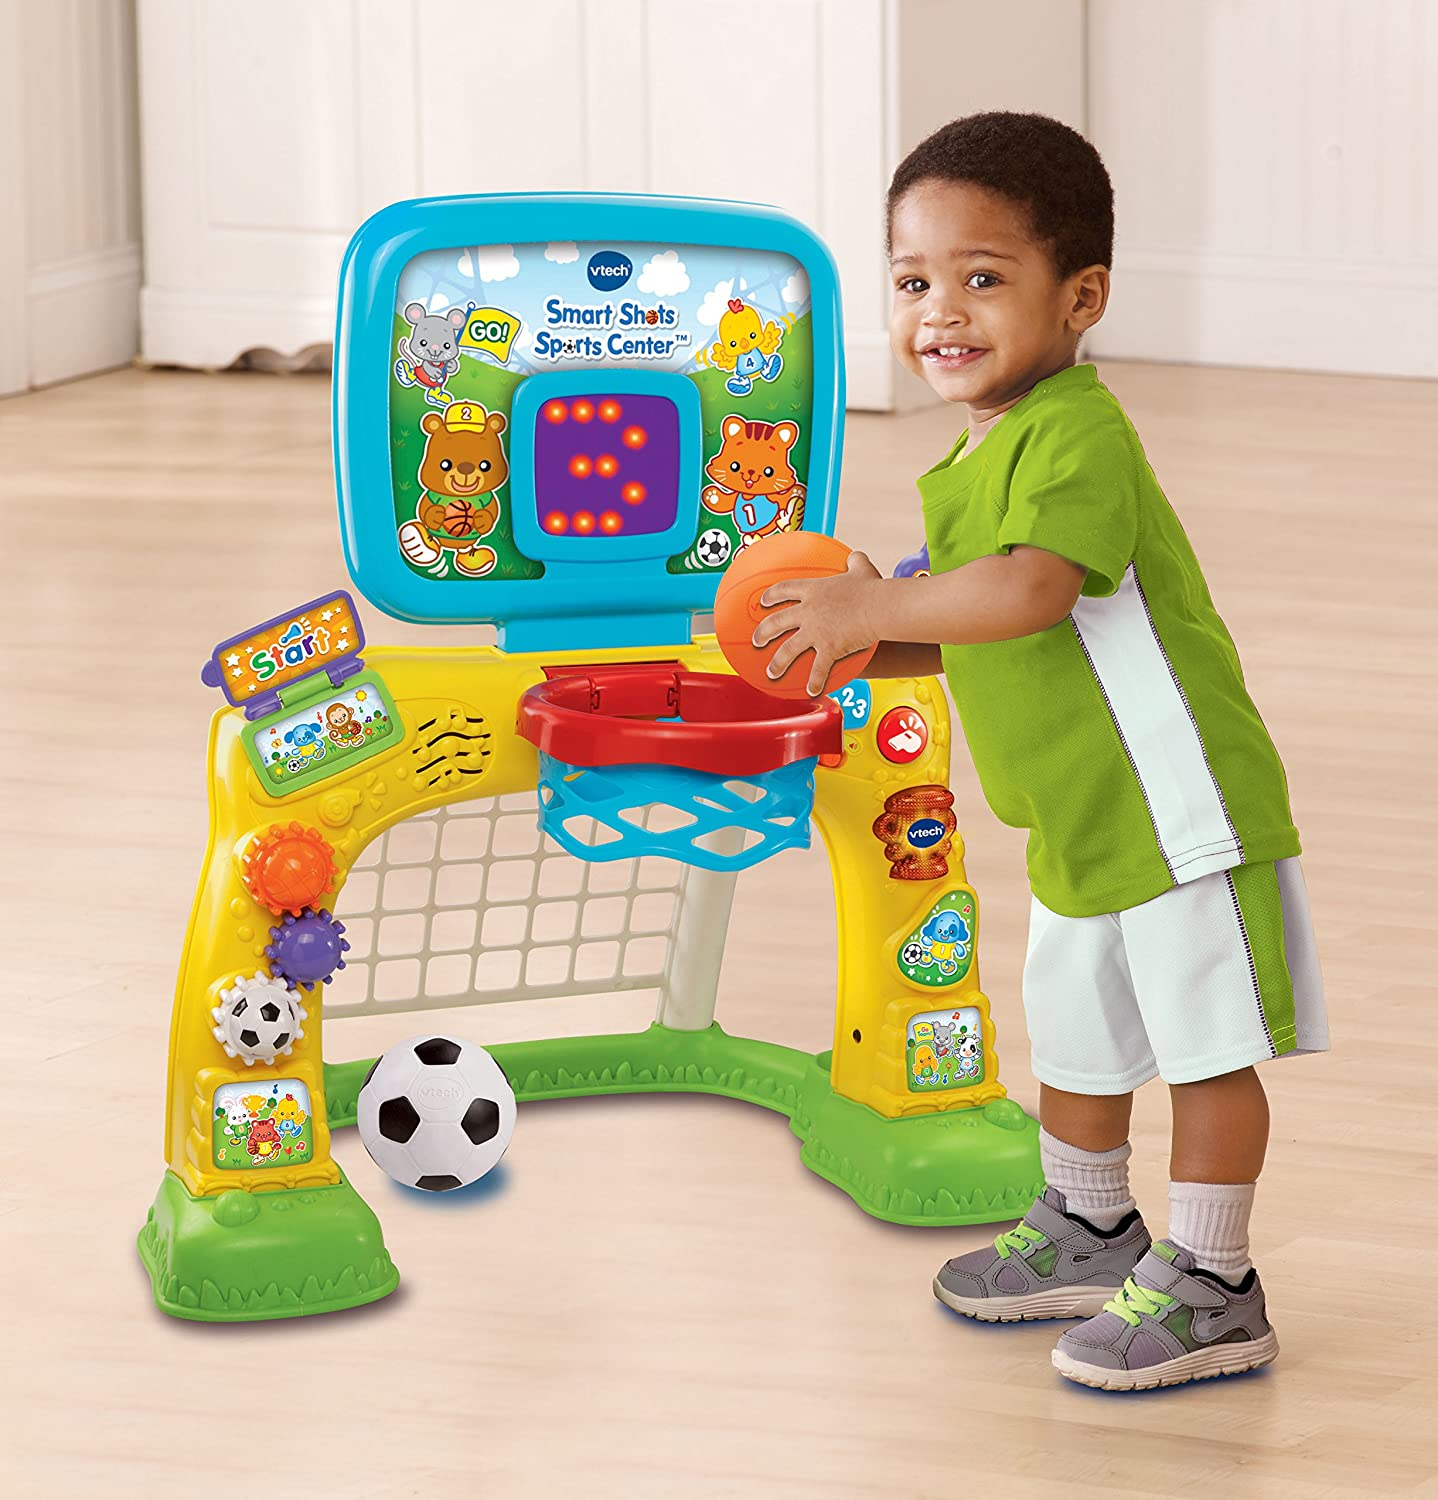 Permalink to Amazing toys for 2 Year Old Boys Images